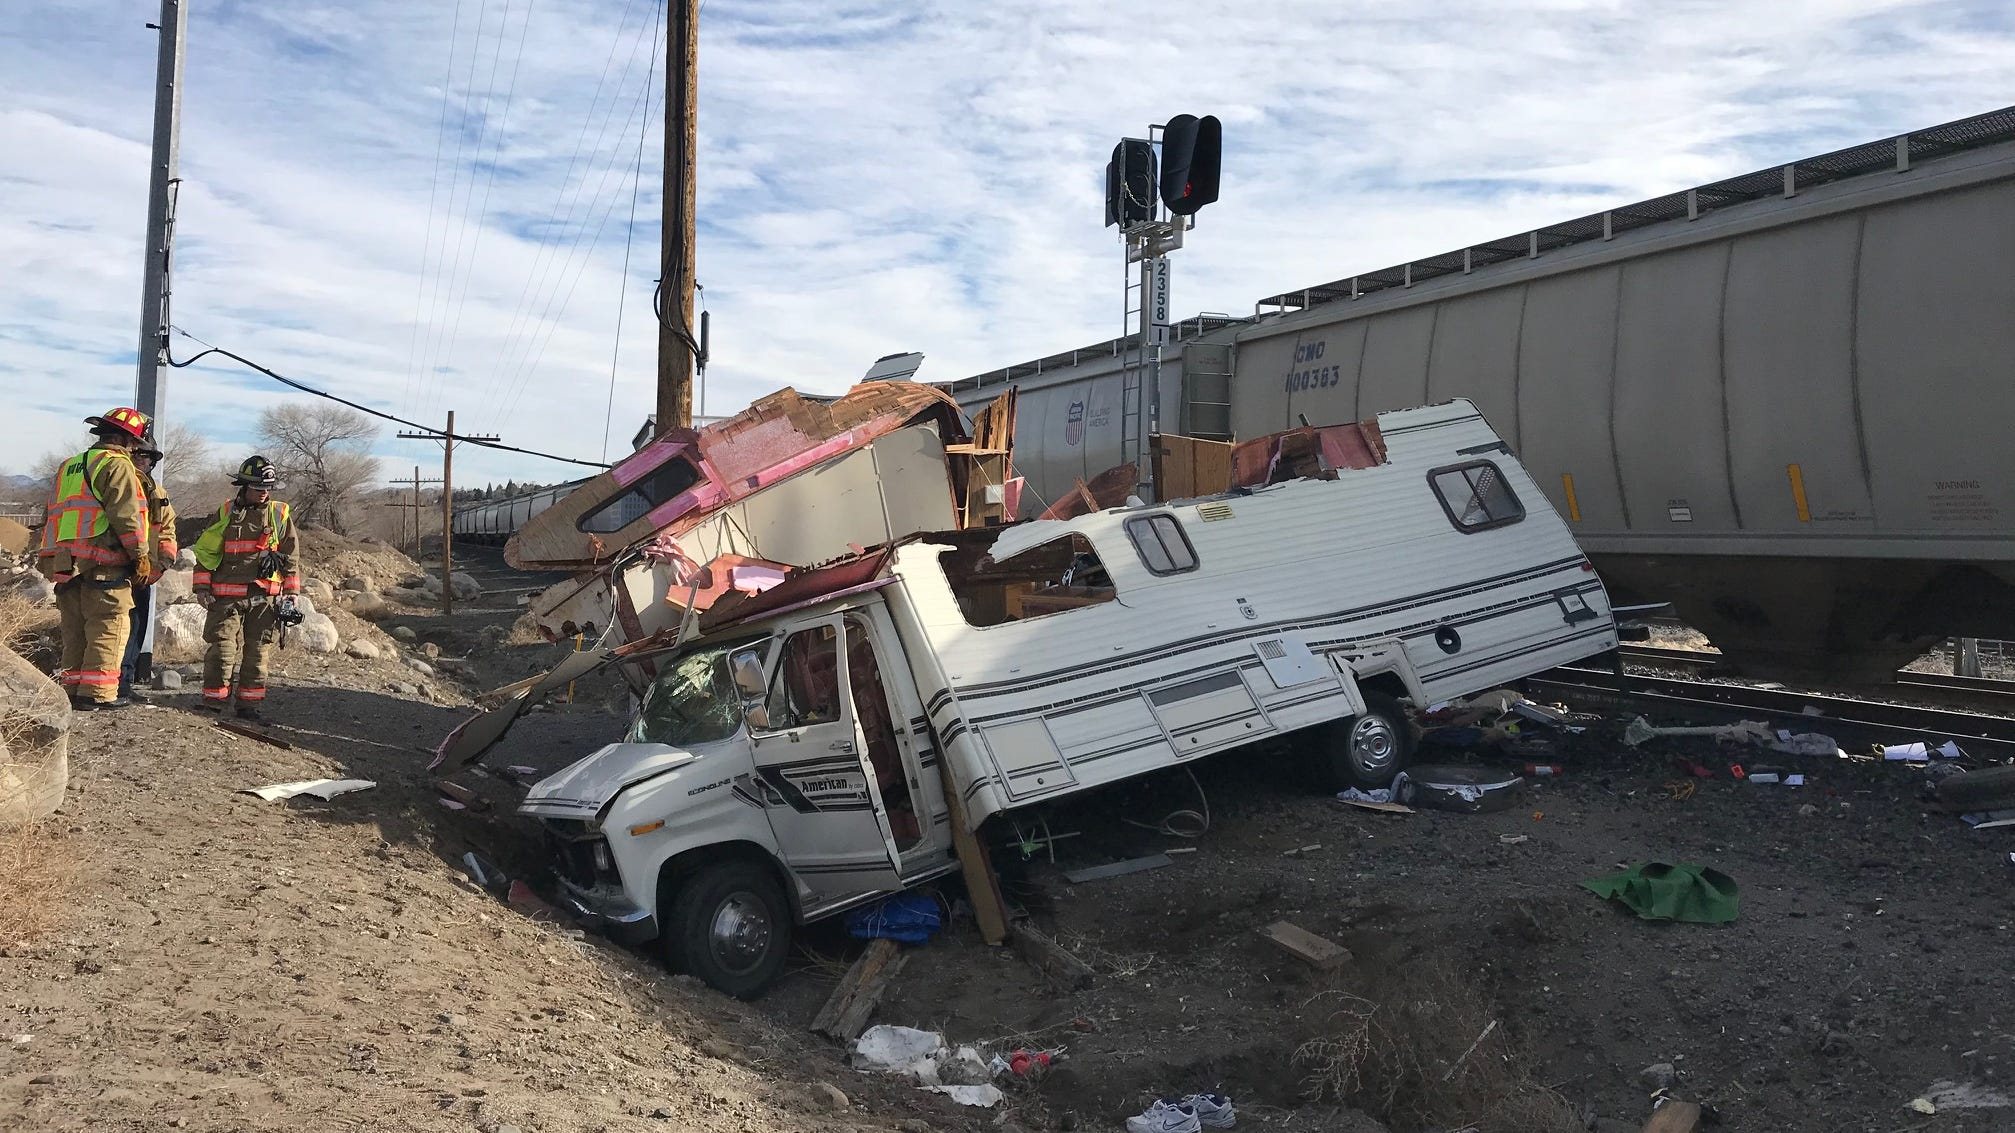 Emergency crews were on the scene Monday, Dec. 18, 2018 of a train-versus-RV crash west of Reno. At least one person was transported to an area hospital.